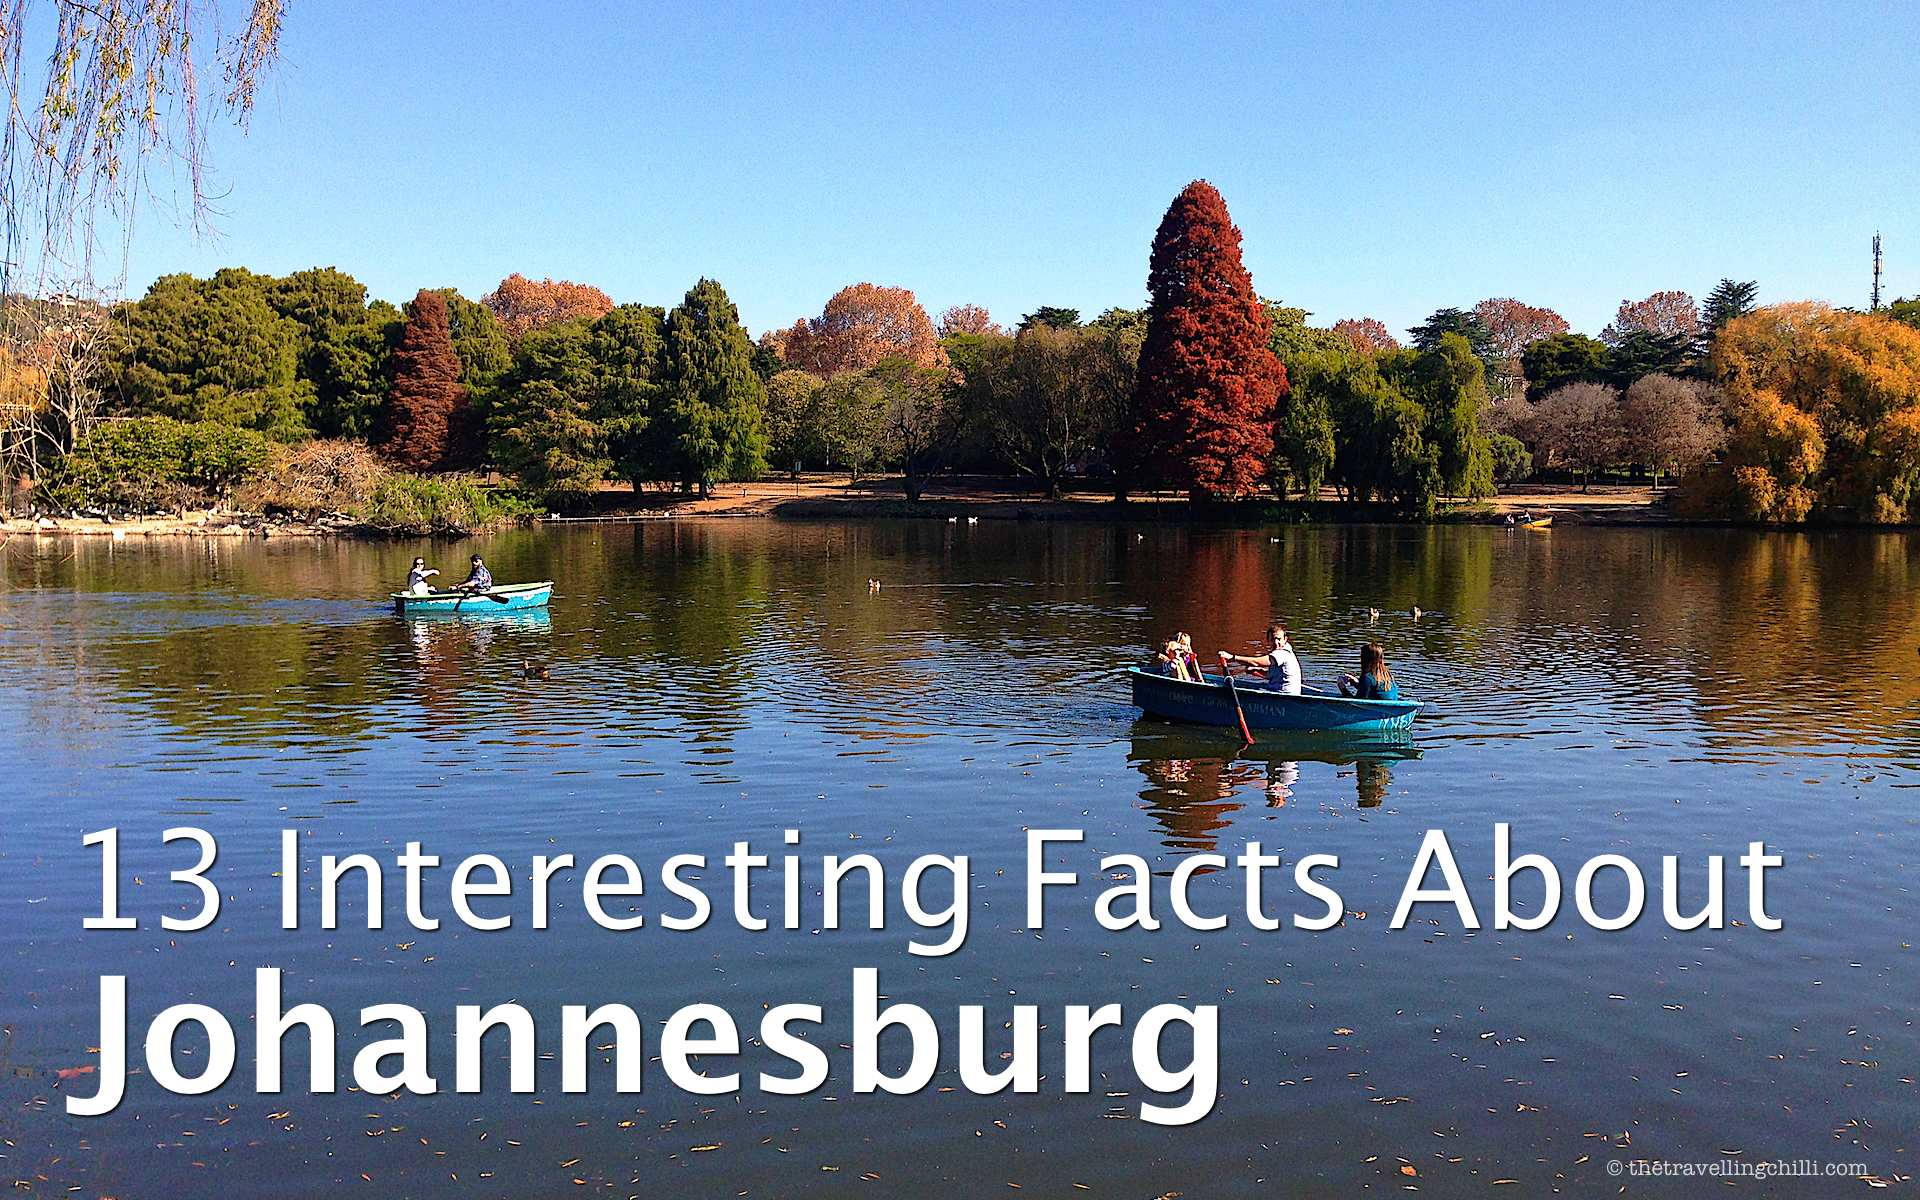 13 Interesting facts about Johannesburg - The Travelling Chilli